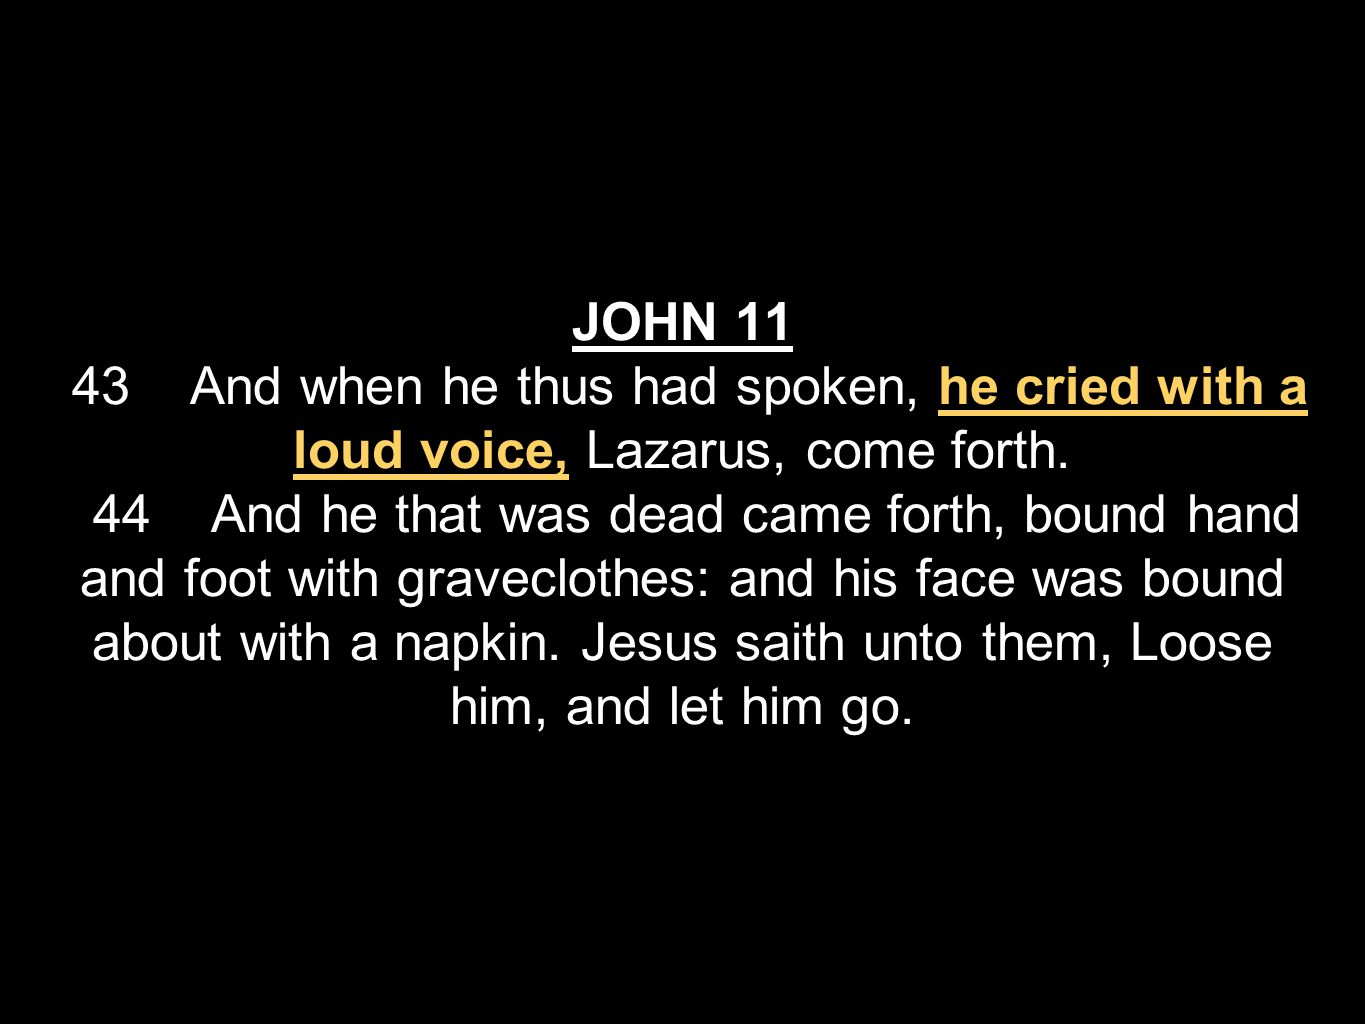 JOHN 11 43 And when he thus had spoken, he cried with a loud voice, Lazarus, come forth.